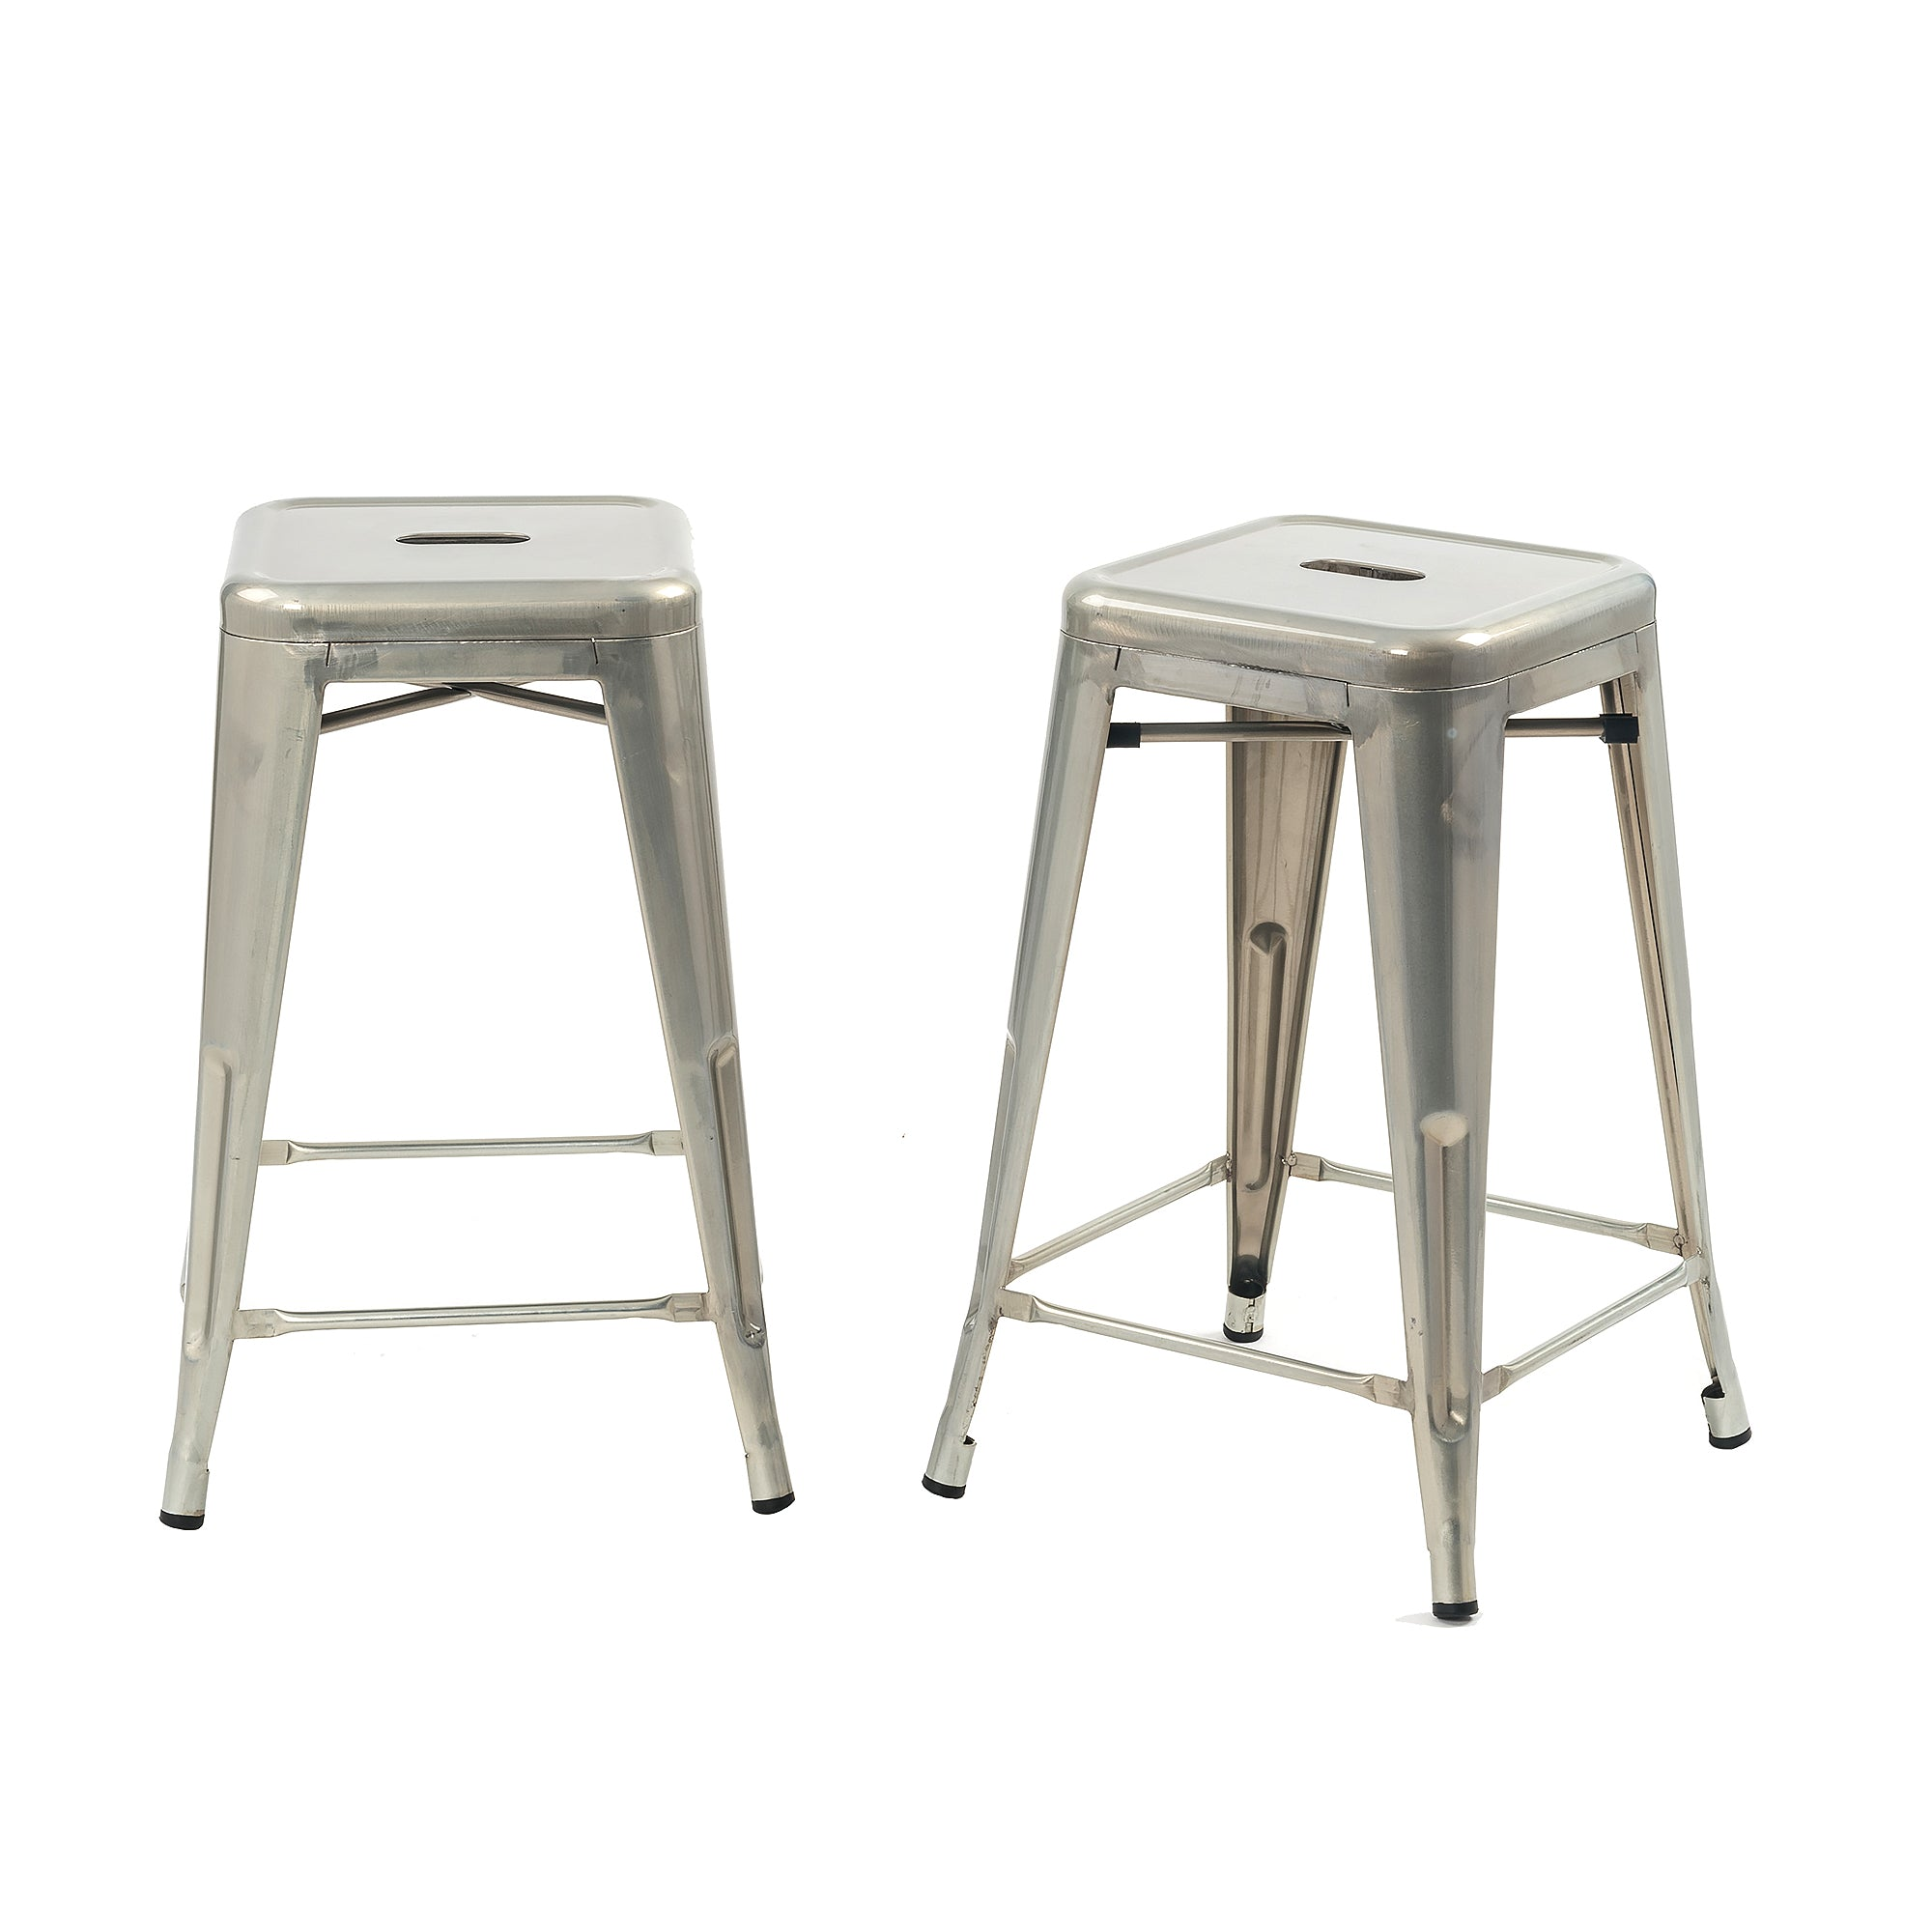 Buschman Set Of 2 Galvanized 24 Inch Counter Height Metal Bar Stools